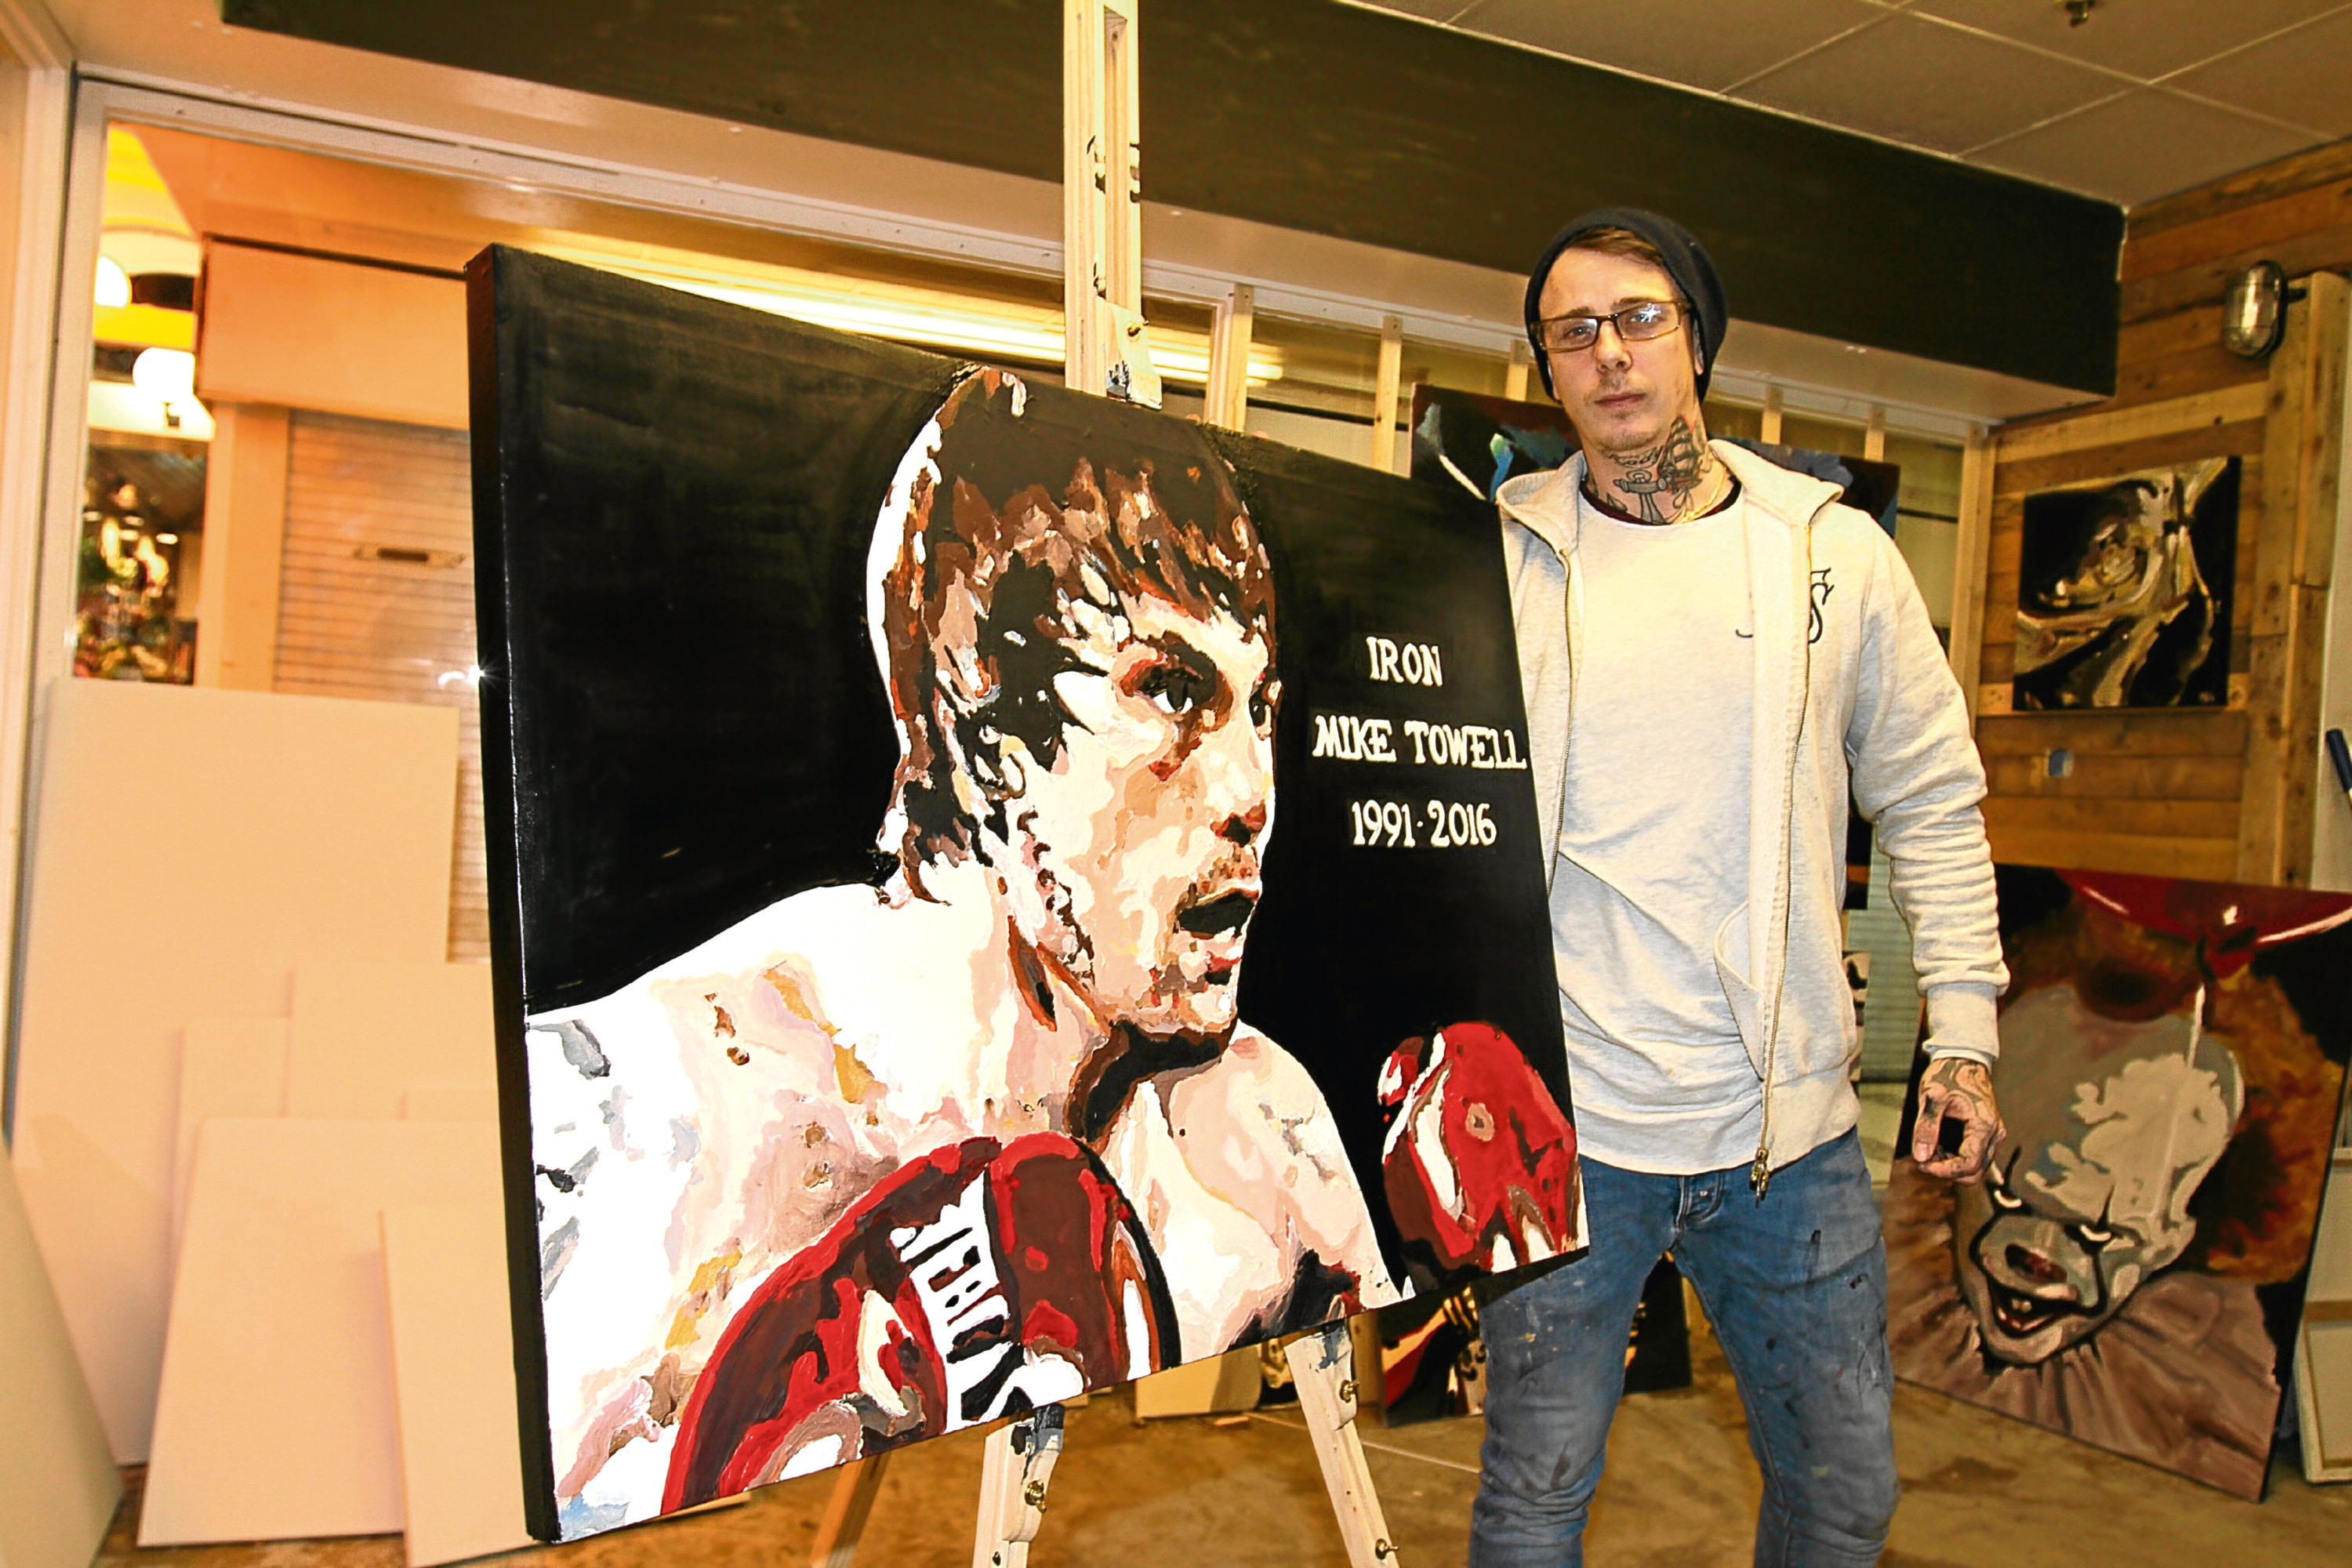 John with his painting of Mike Towell